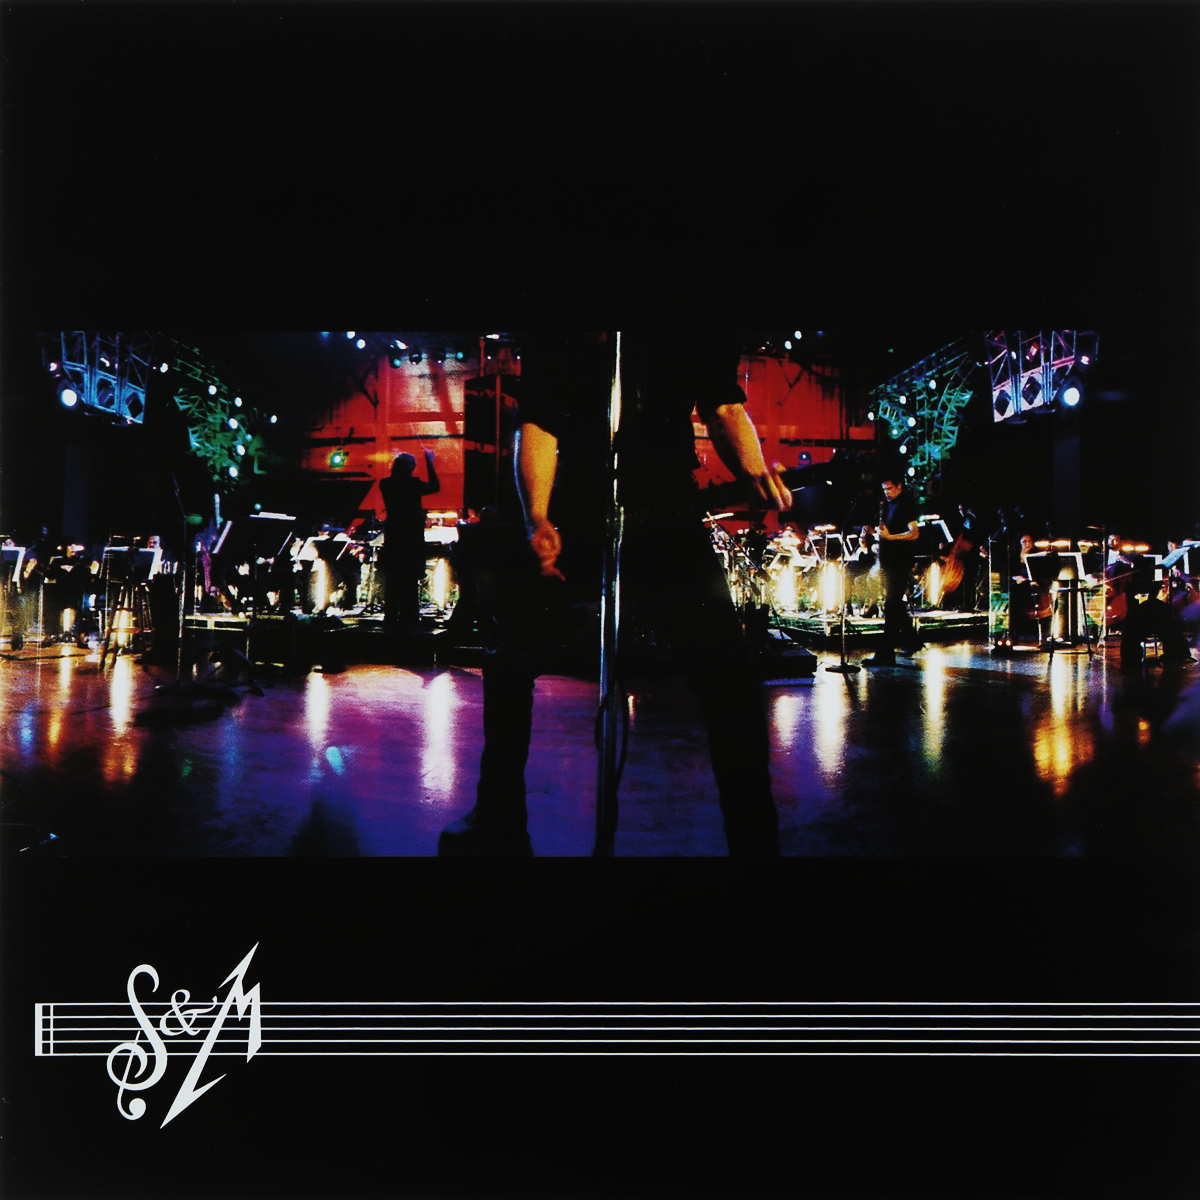 Metallica,The San Francisco Symphony Orchestra,Майкл Кэймен Metallica. S&M (2 CD) b screen b156xw02 v 2 v 0 v 3 v 6 fit b156xtn02 claa156wb11a n156b6 l04 n156b6 l0b bt156gw01 n156bge l21 lp156wh4 tla1 tlc1 b1